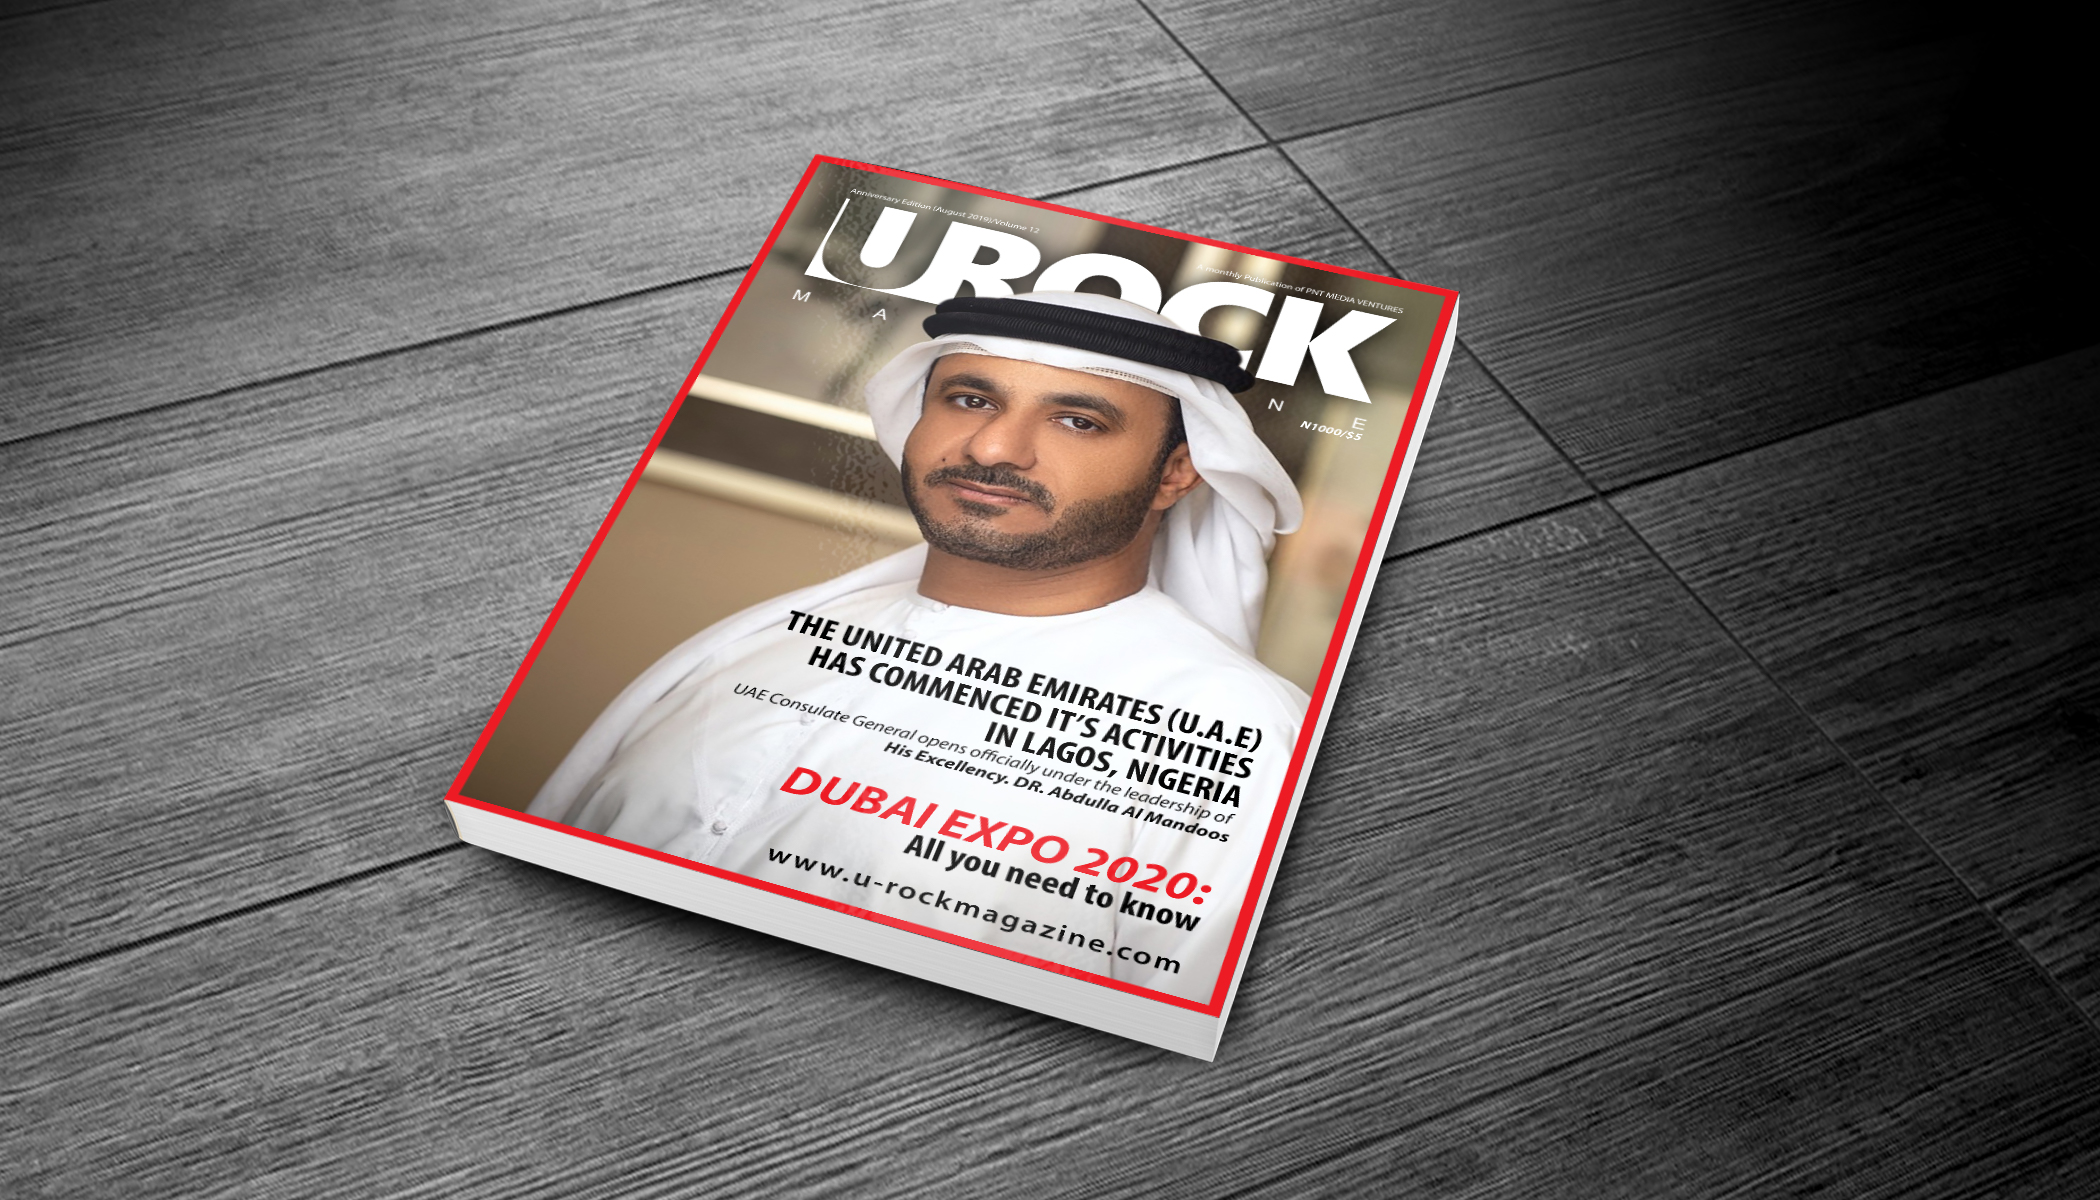 August Edition Of U-rock Magazine Is Out.